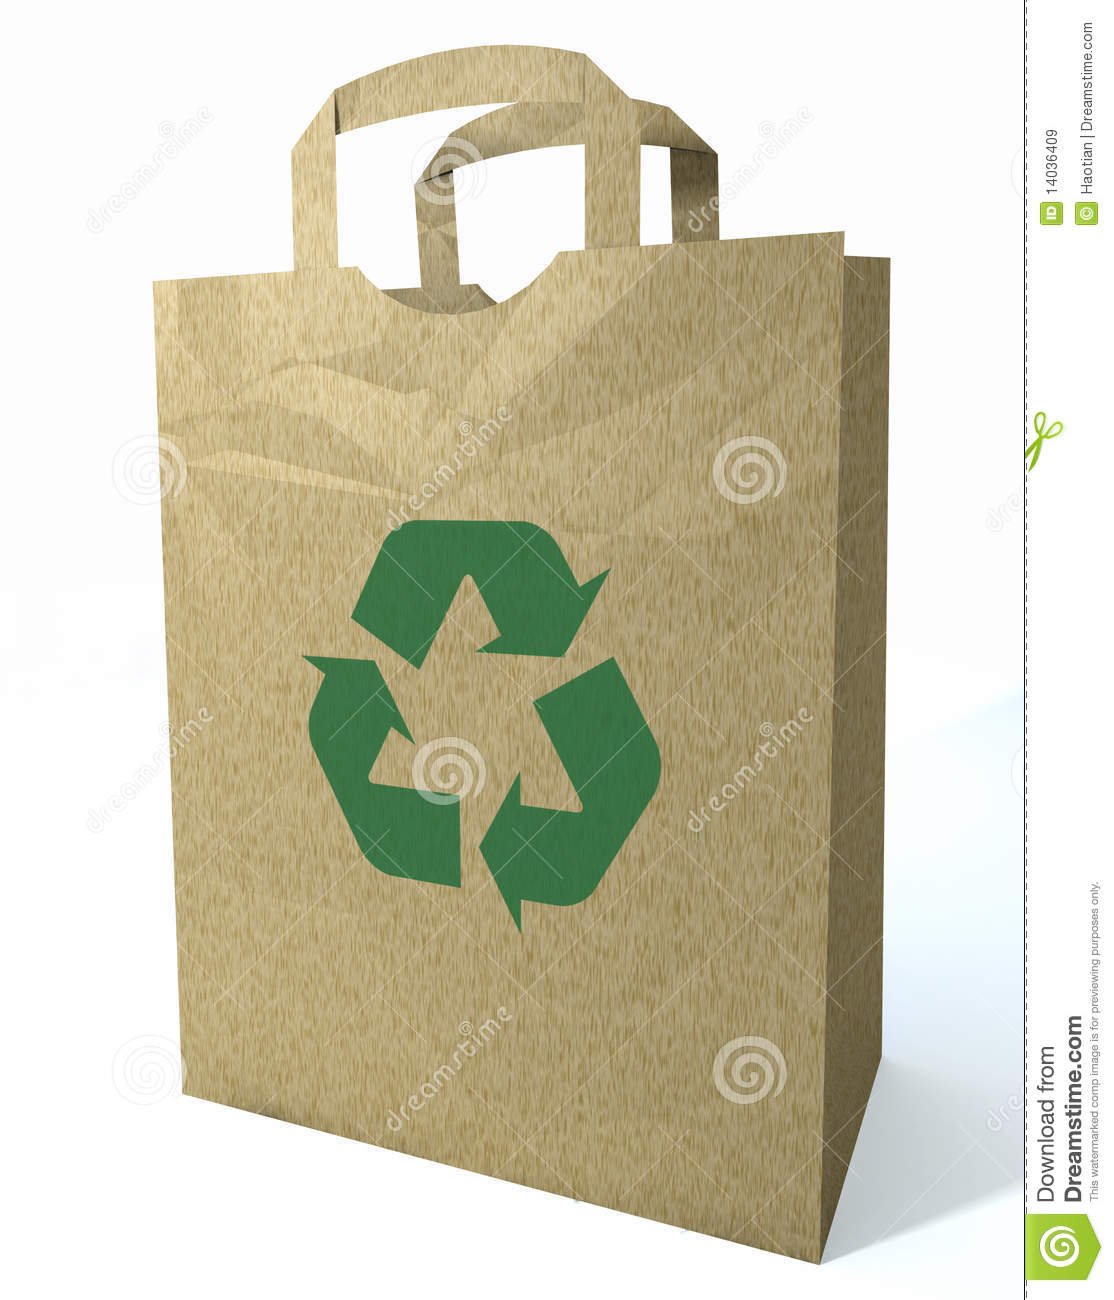 3d Recycled Shopping Bag Royalty Free Stock Images - Image: 14036409